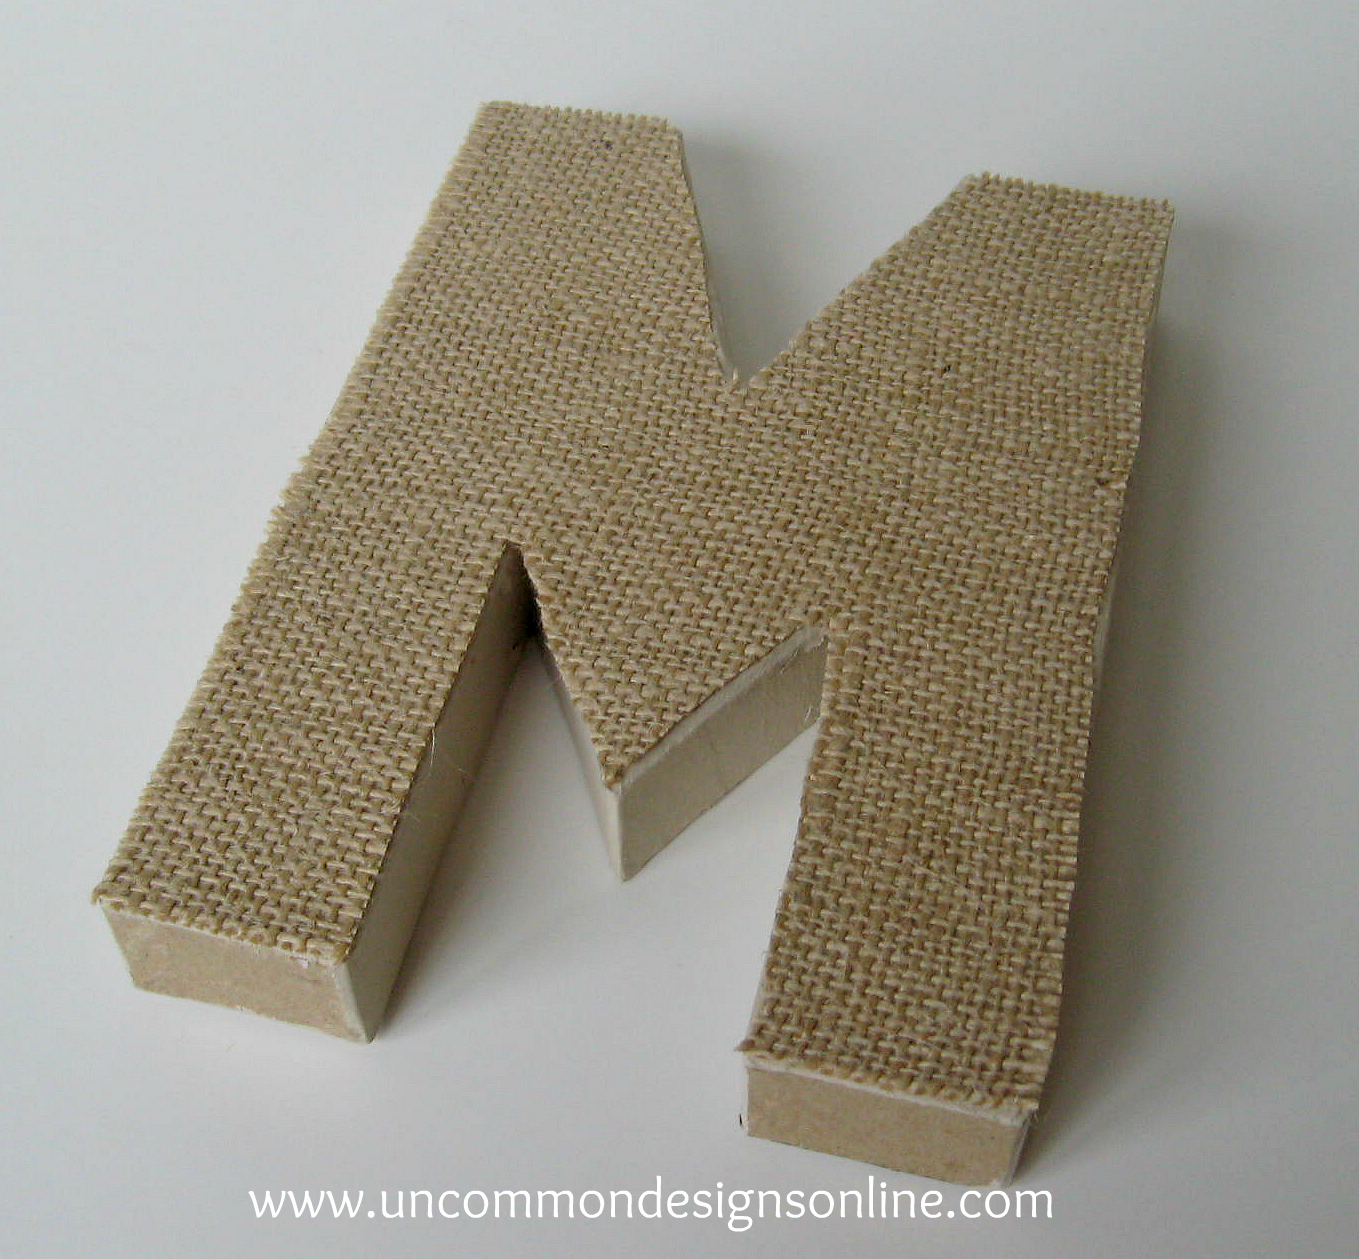 Awesome Burlap Covered Letters